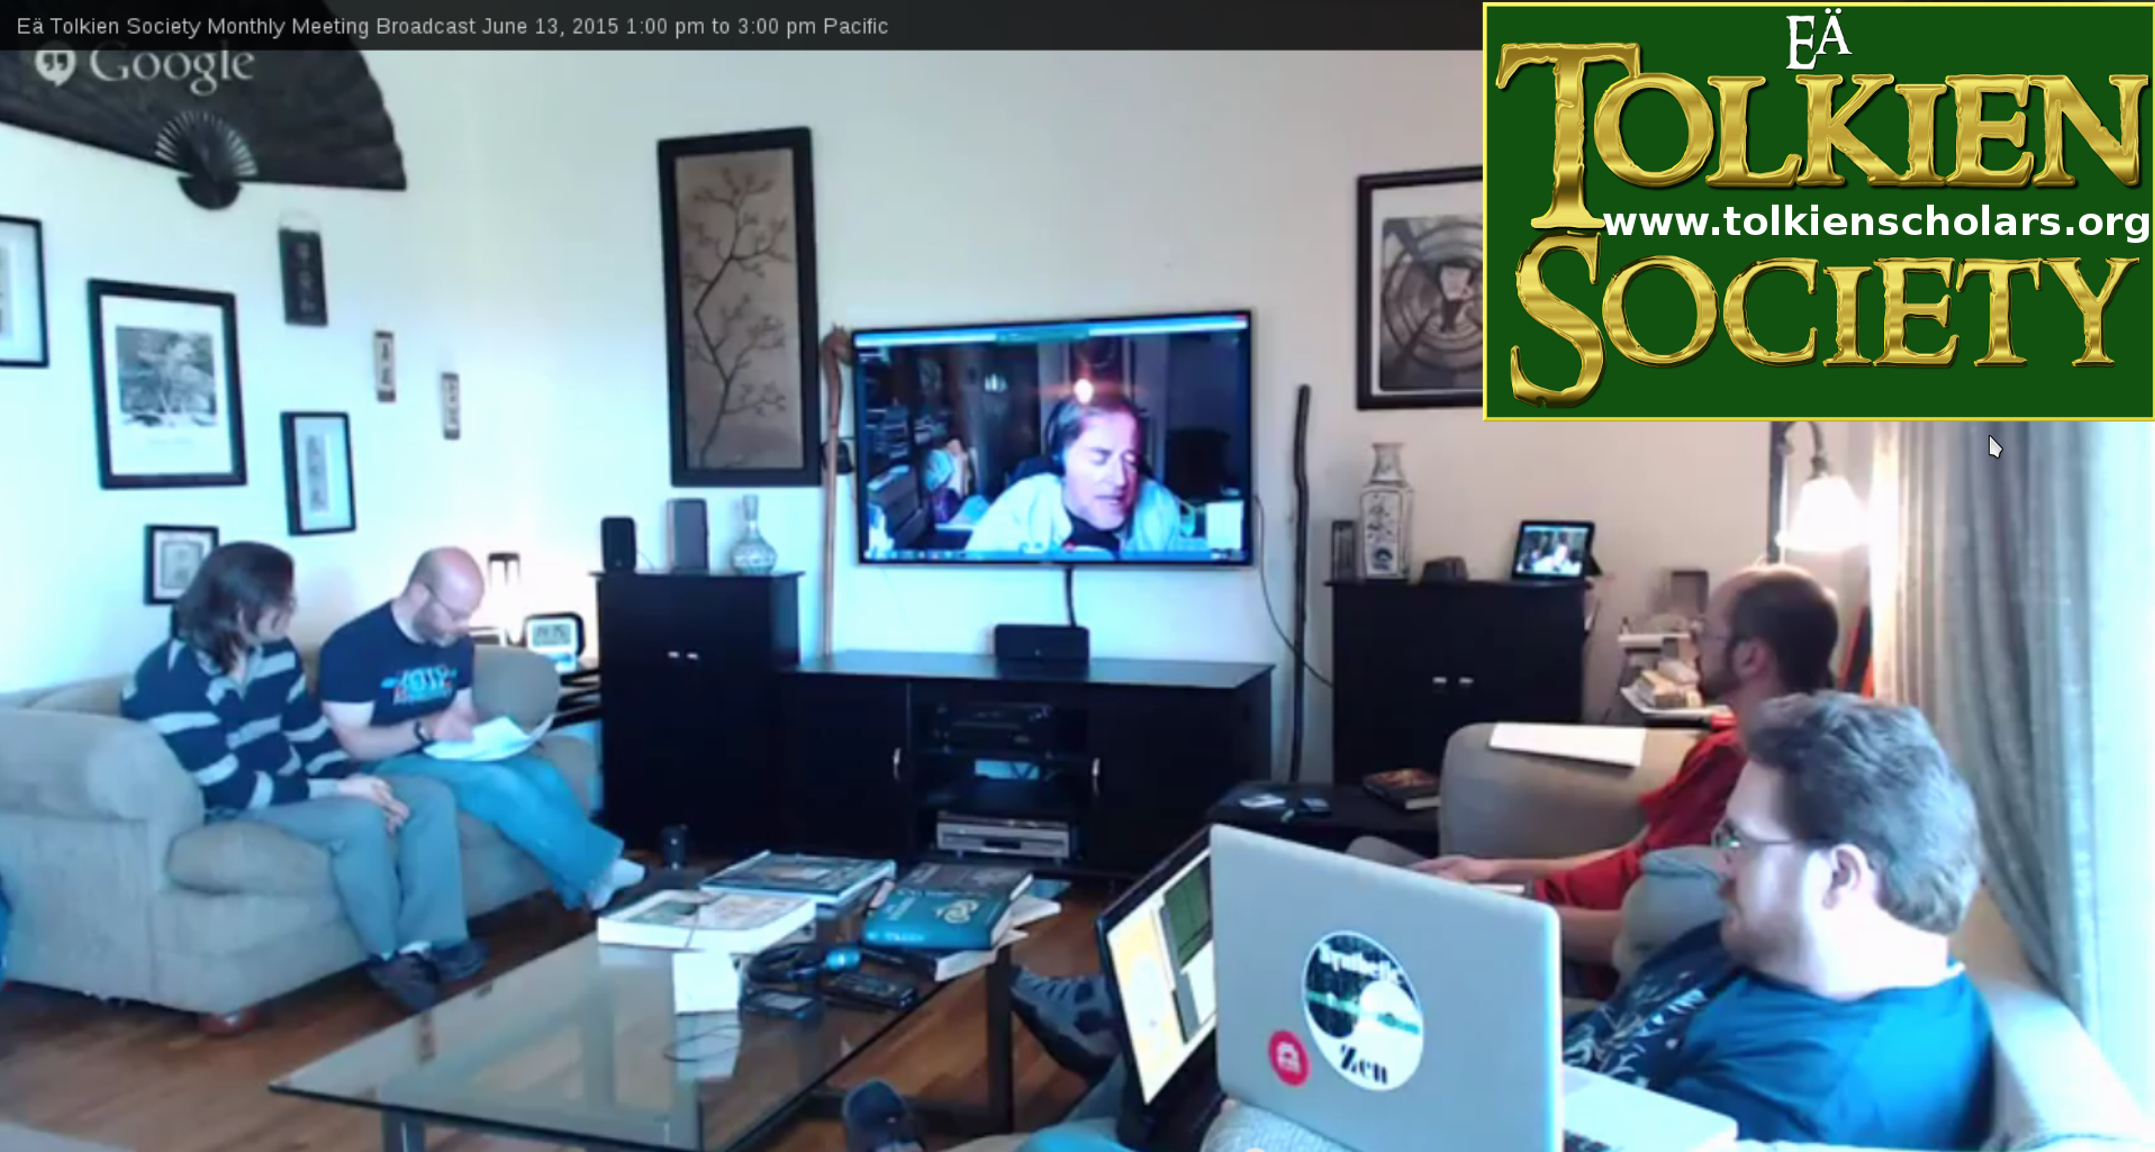 Eä Tolkien Society Monthly Meeting Notes, April 2016